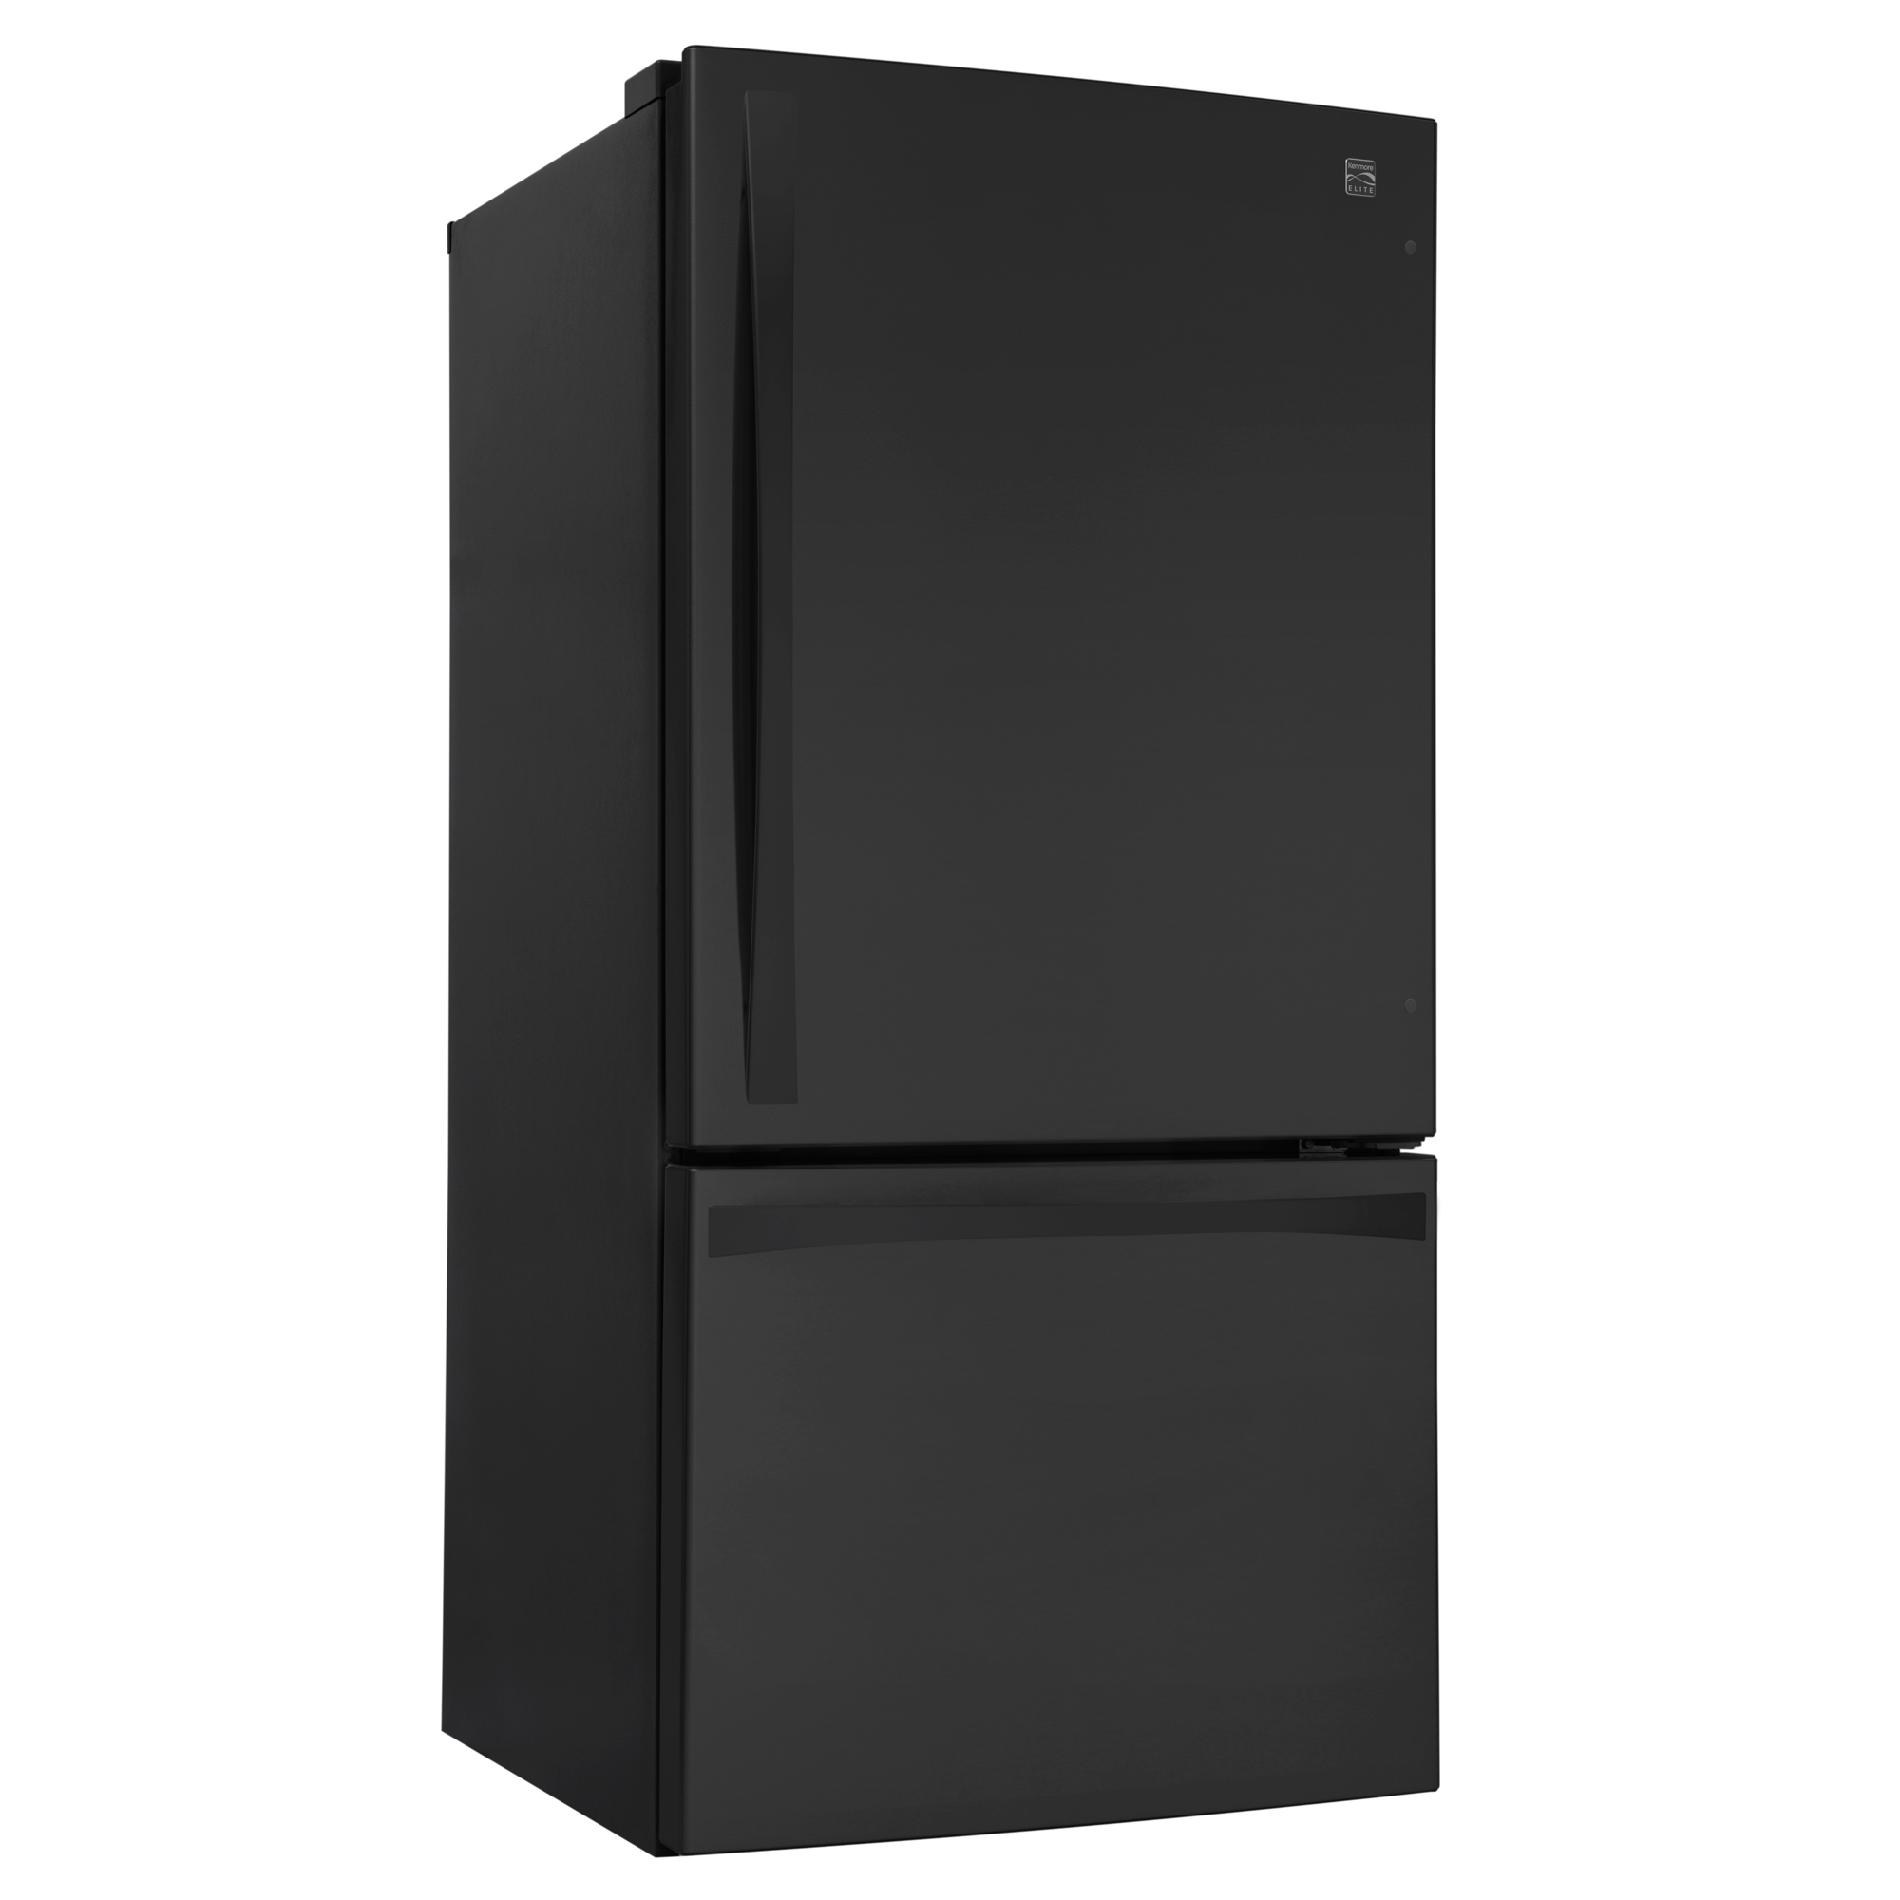 Kenmore Elite 24 cu. ft. Bottom-Freezer Refrigerator – Black